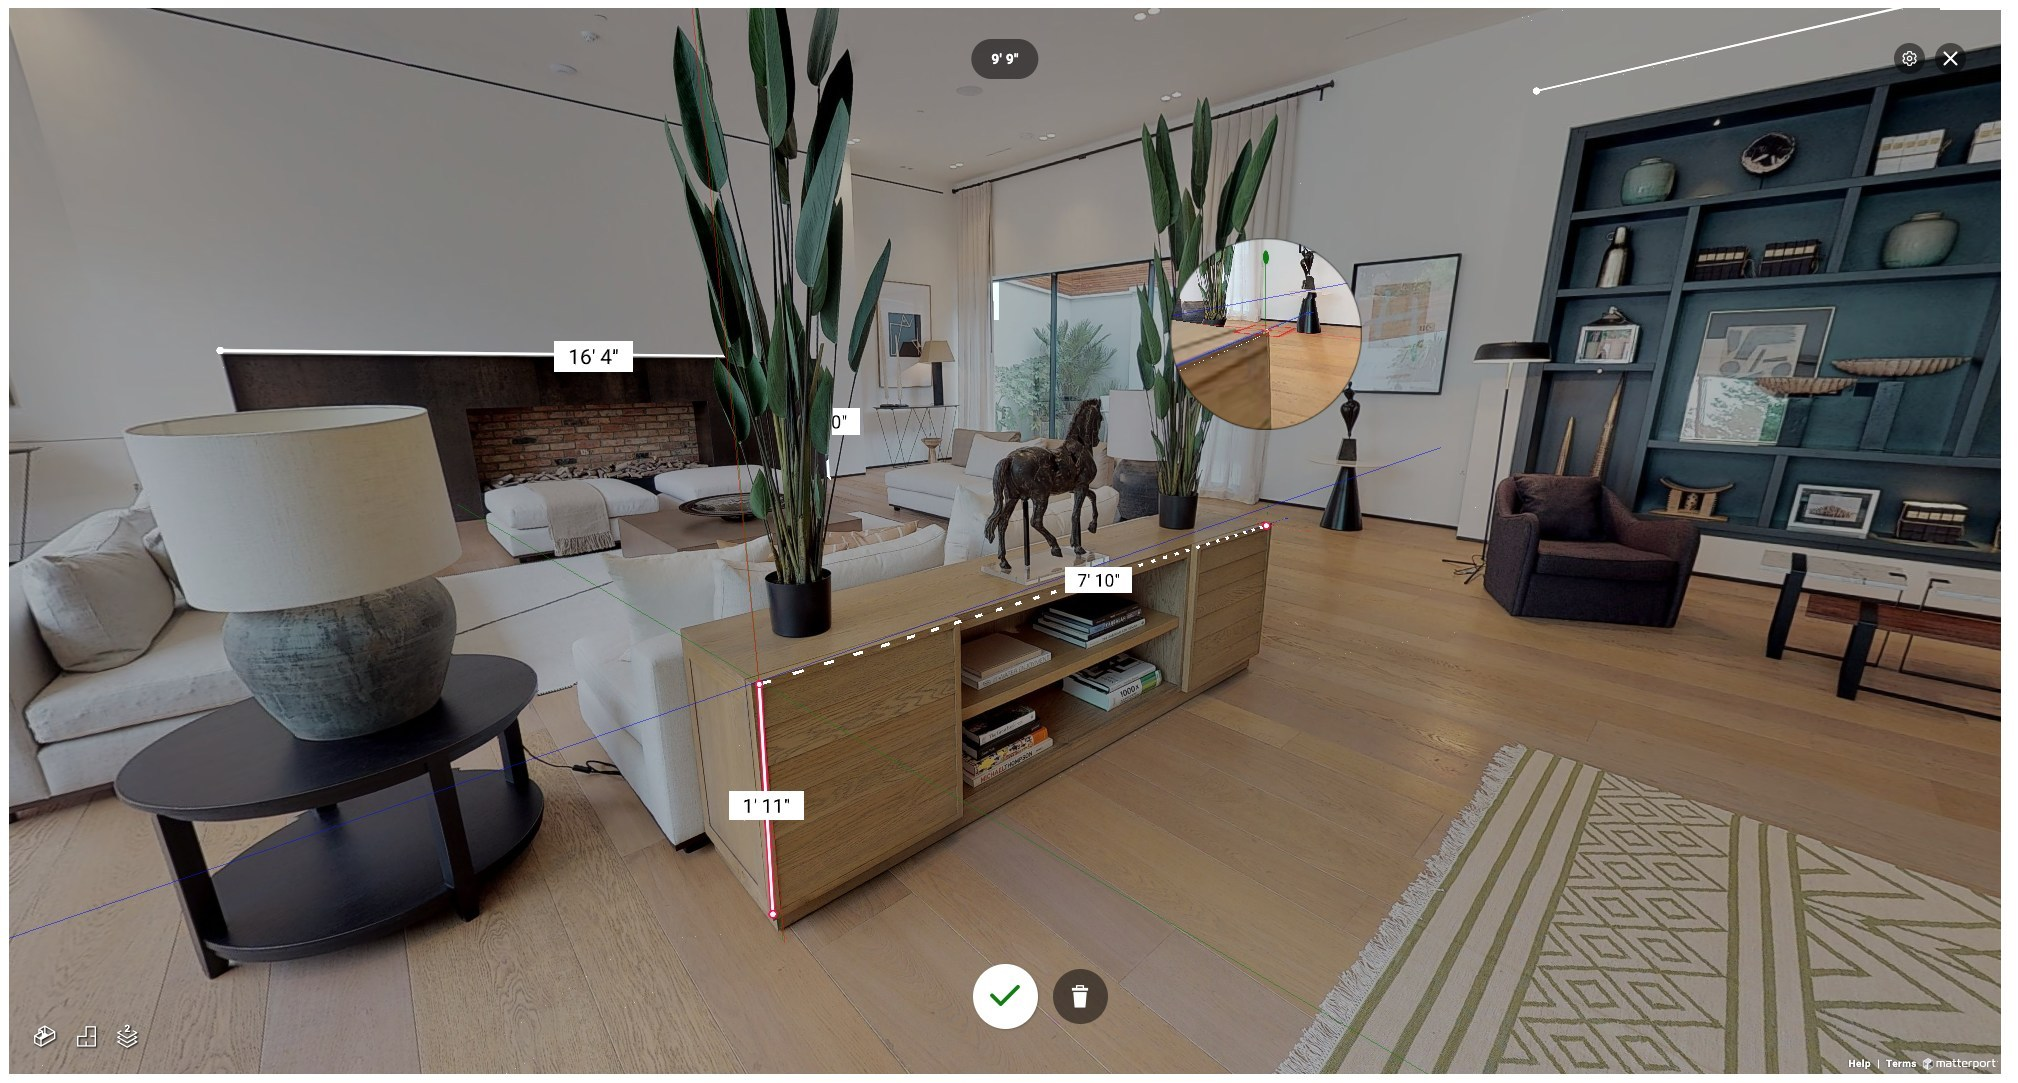 Matterport Measurement Mode